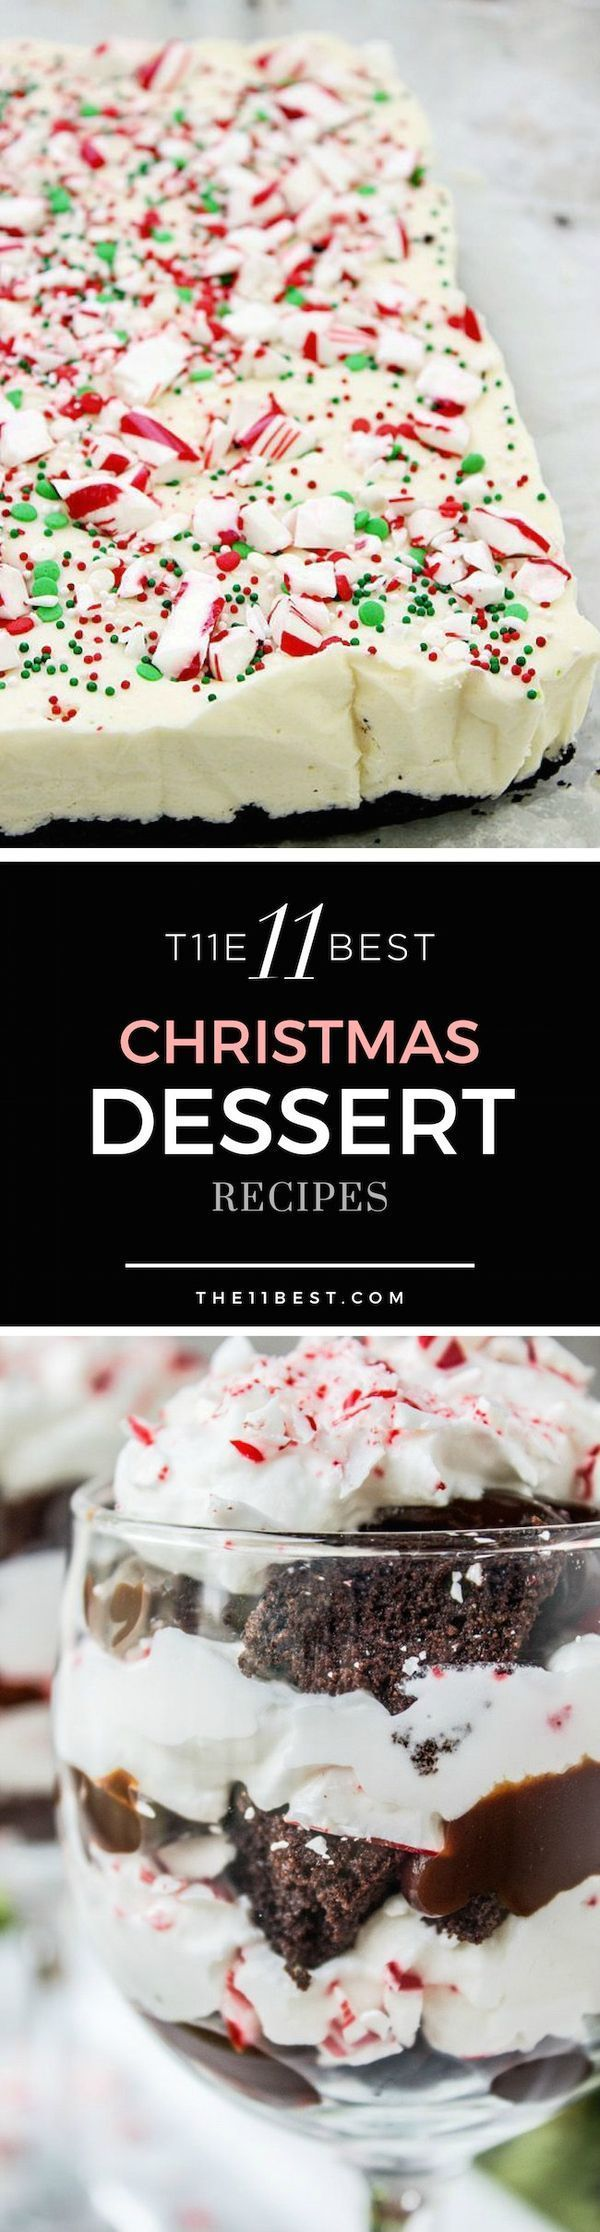 The Best Homemade Christmas Dessert Recipes (Homemade Christmas Recipes)